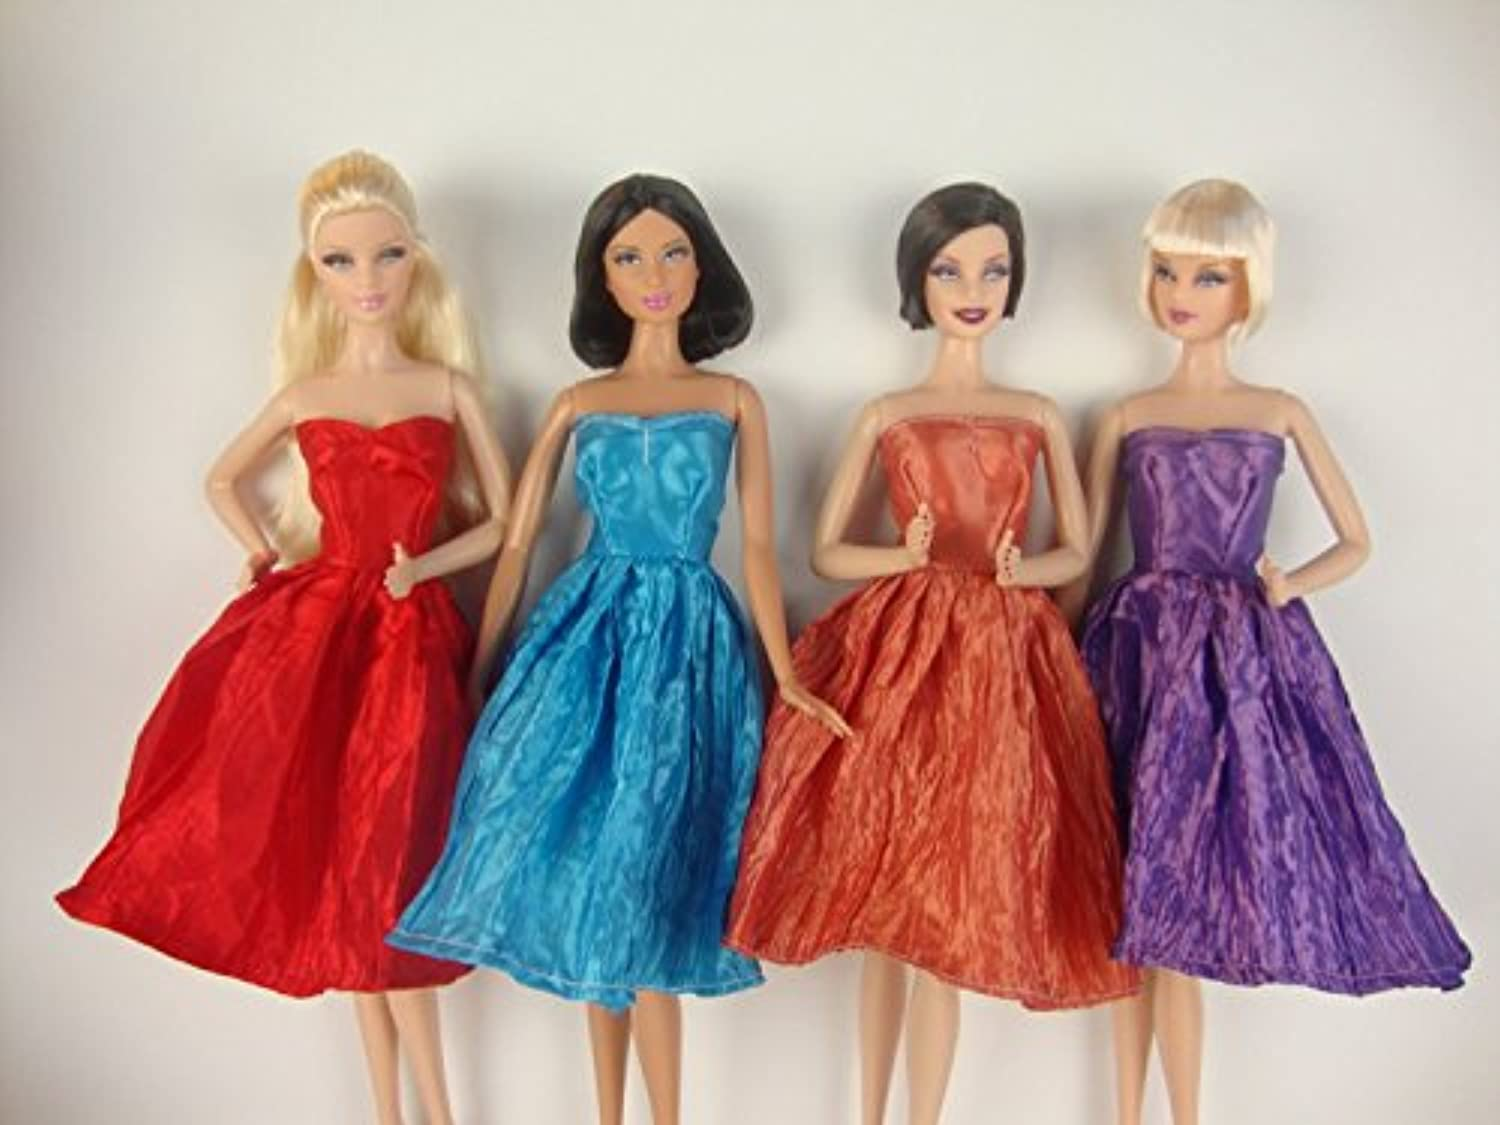 Set of 4 Beautiful Knee Length Dresses in Red, Purple, Blue and Rust Color Made to Fit the Barbie Doll by Olivia's Doll Closet [並行輸入品]